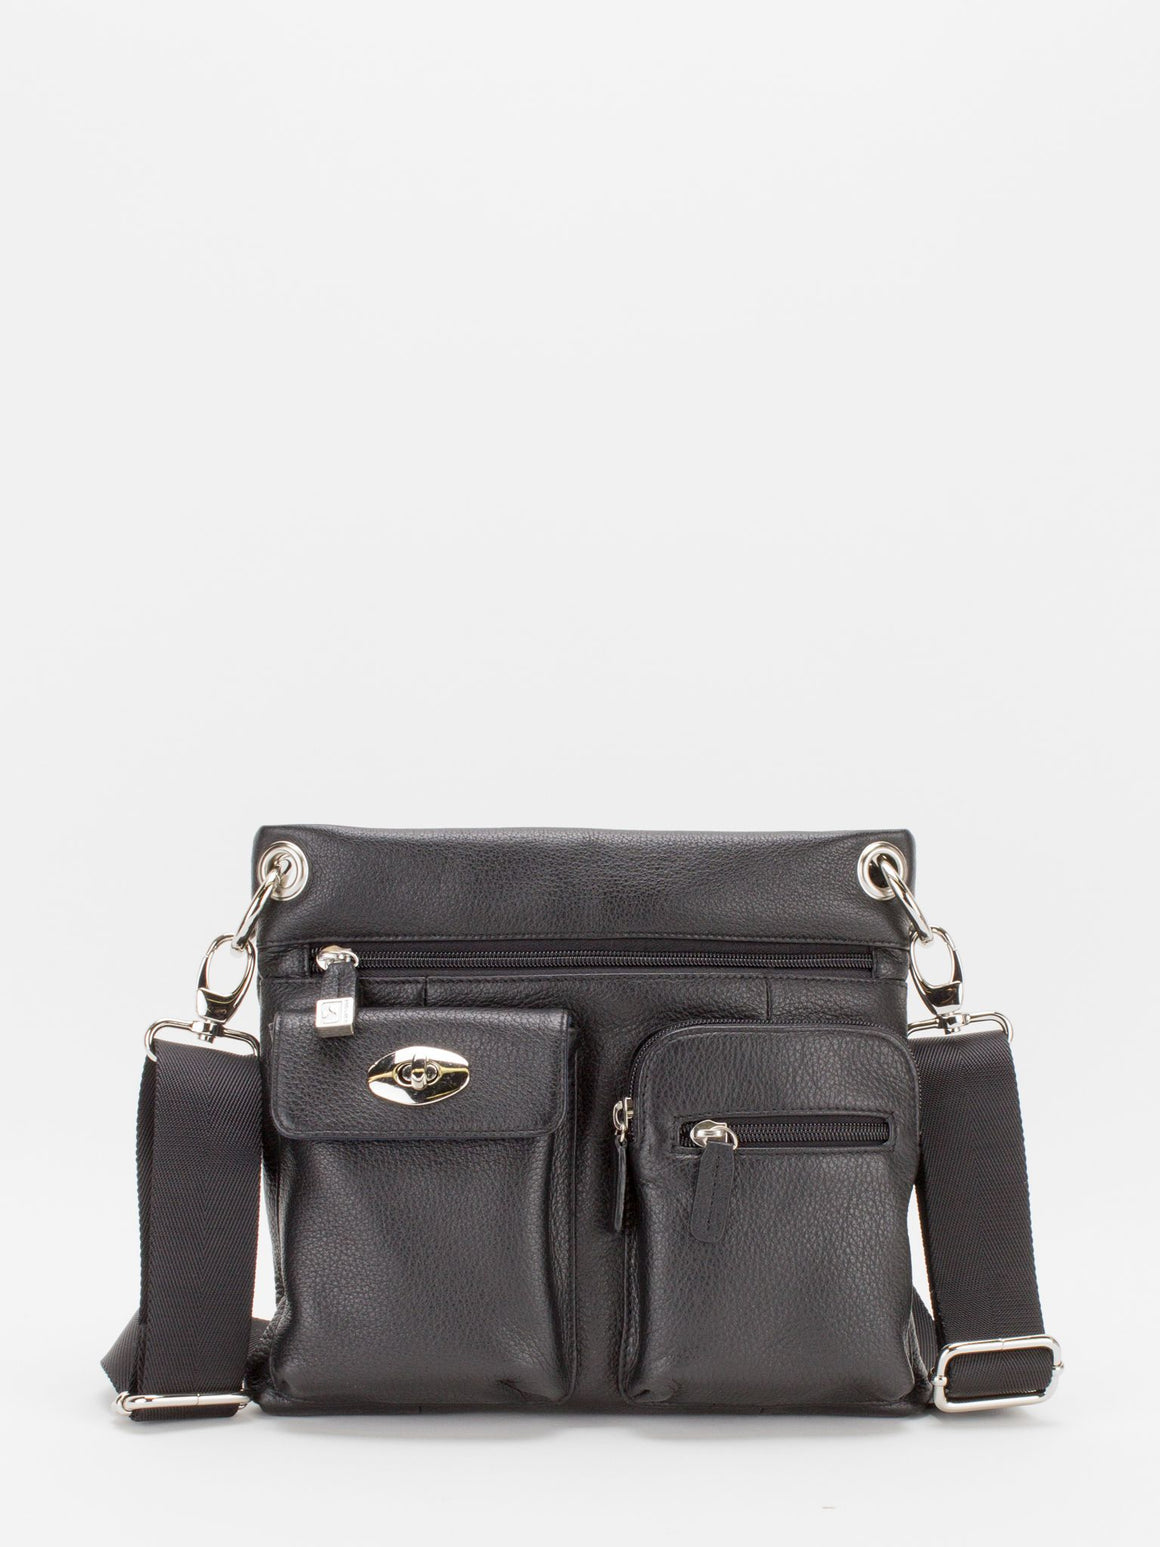 Presley Leather Crossbody - Black